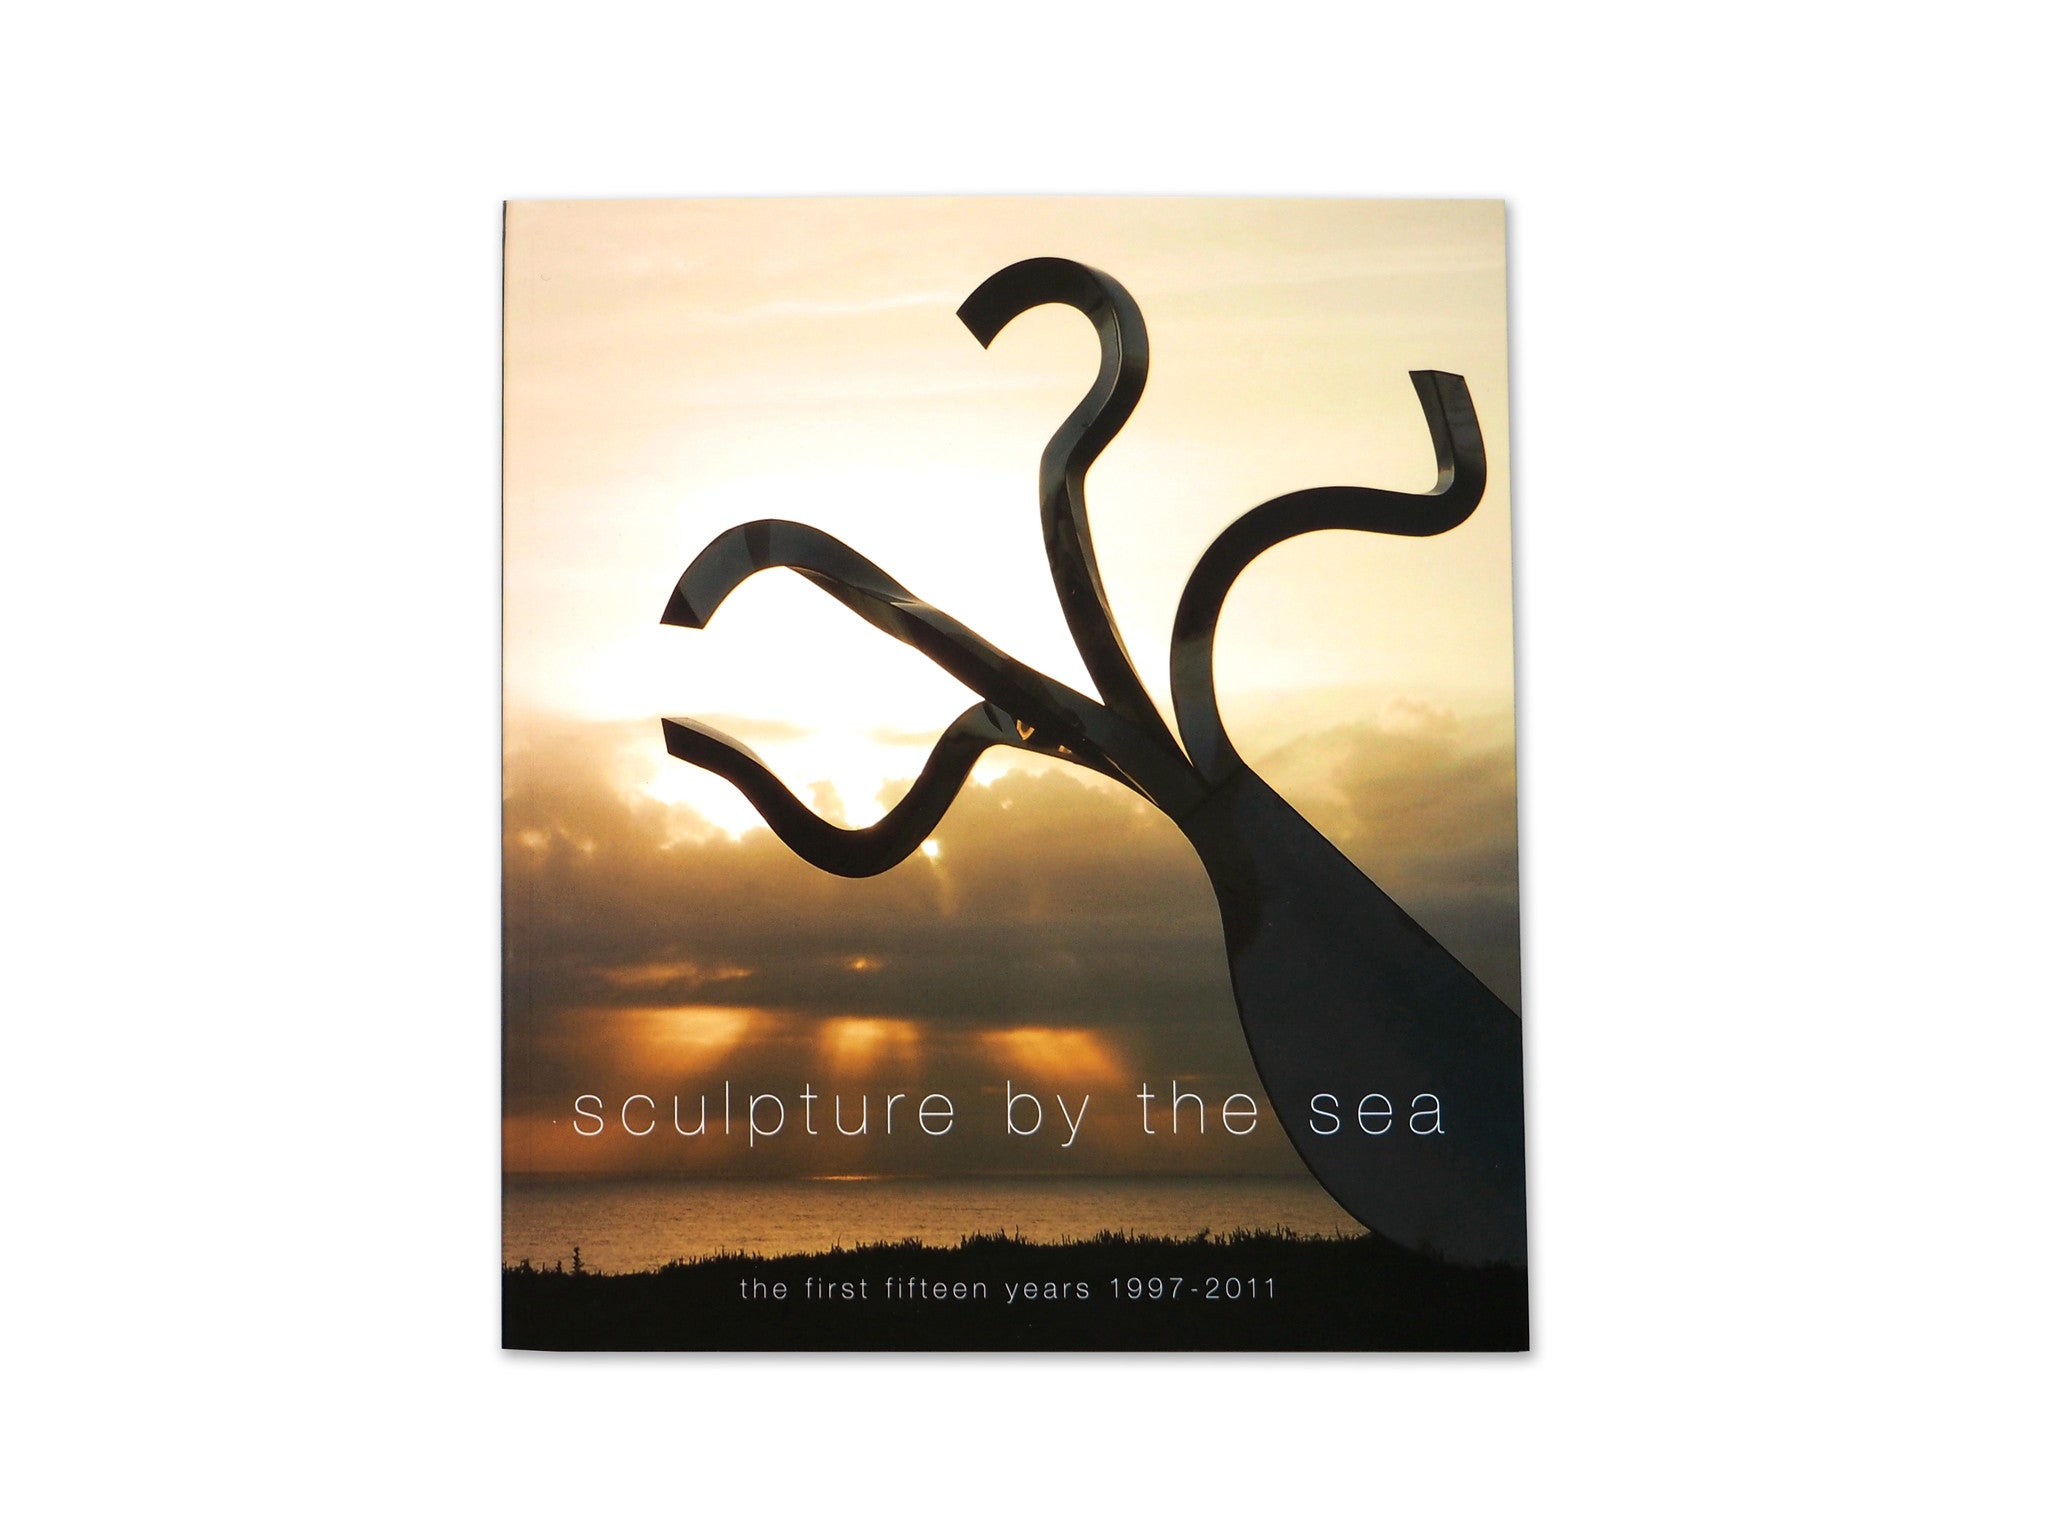 Sculpture by the Sea 15th Anniversary Book